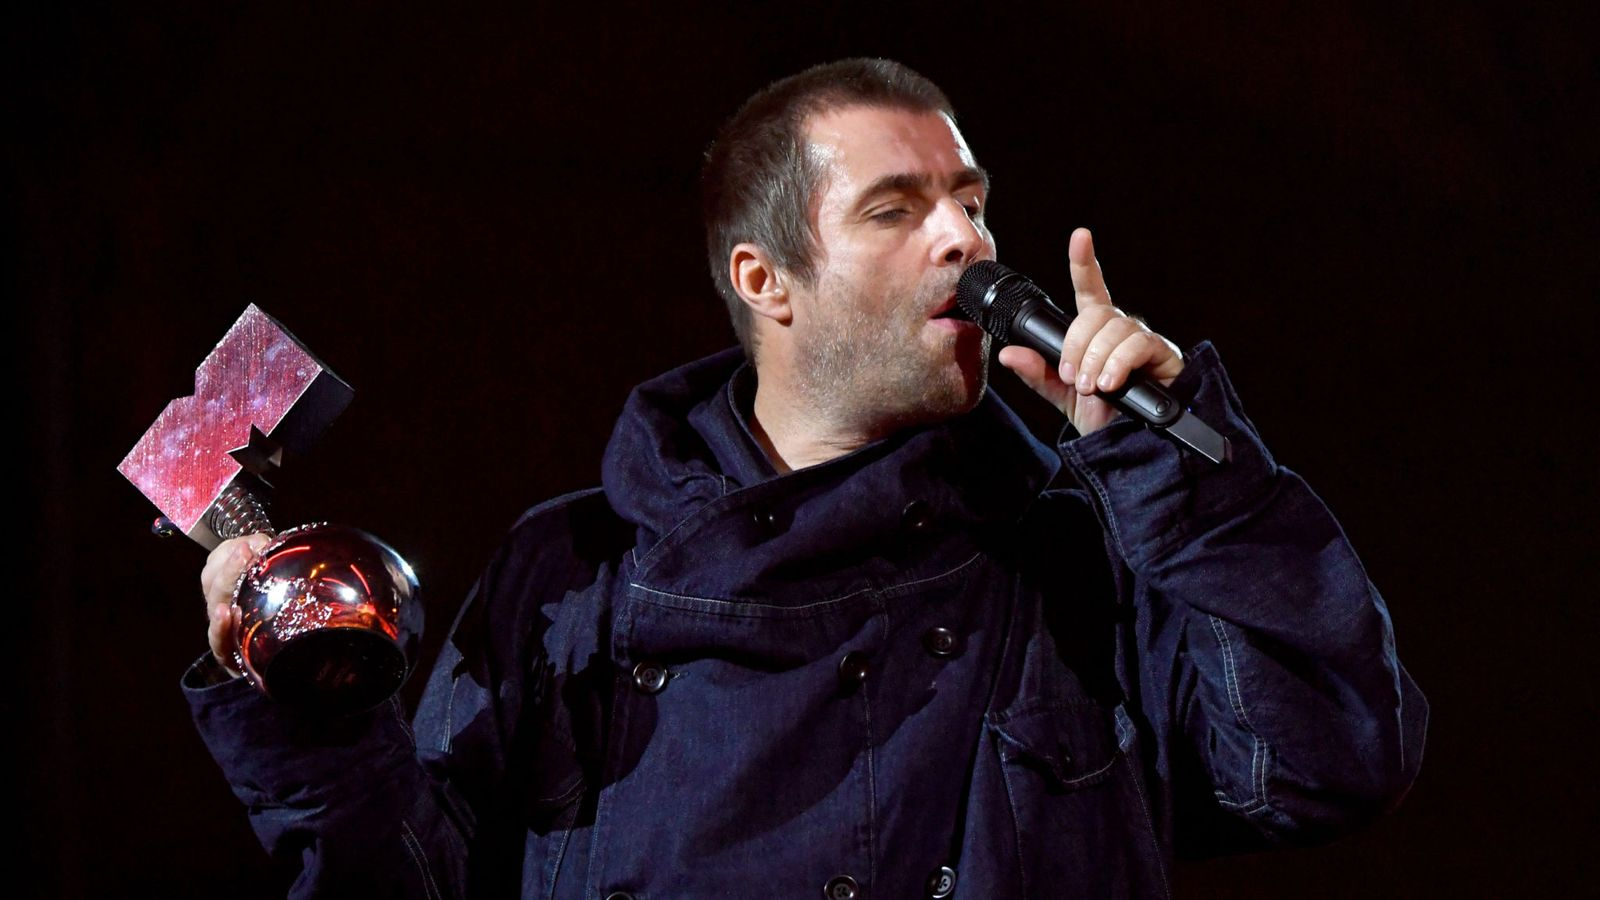 MTV EMAs: Ariana Grande and Lil Nas X snubbed as Liam Gallagher crowned Rock Icon 15